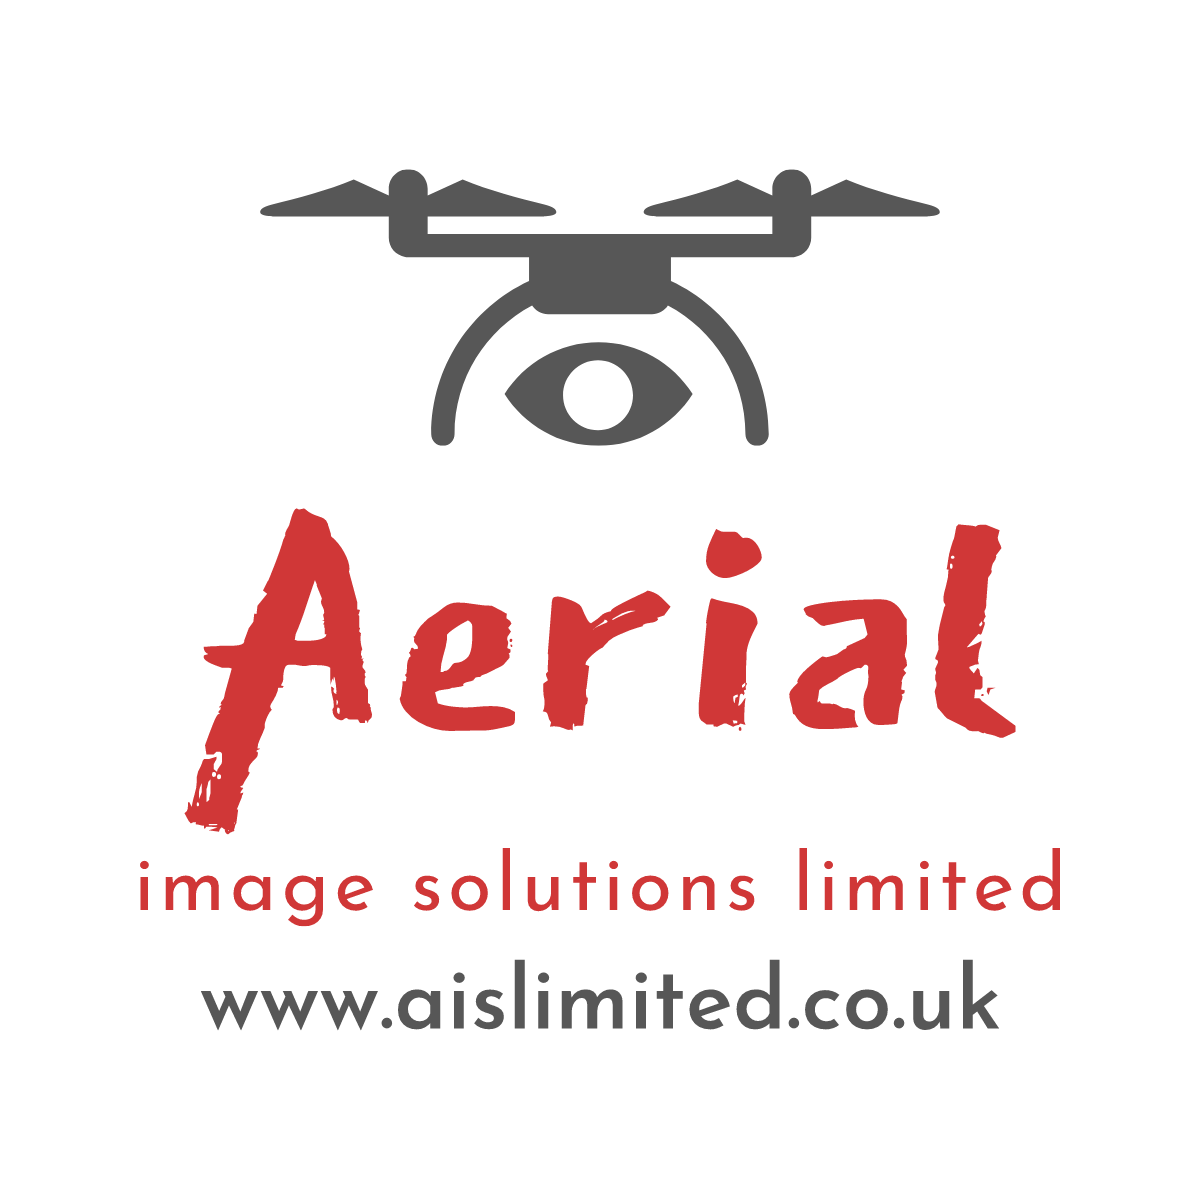 Aerial Image Solutions Limited